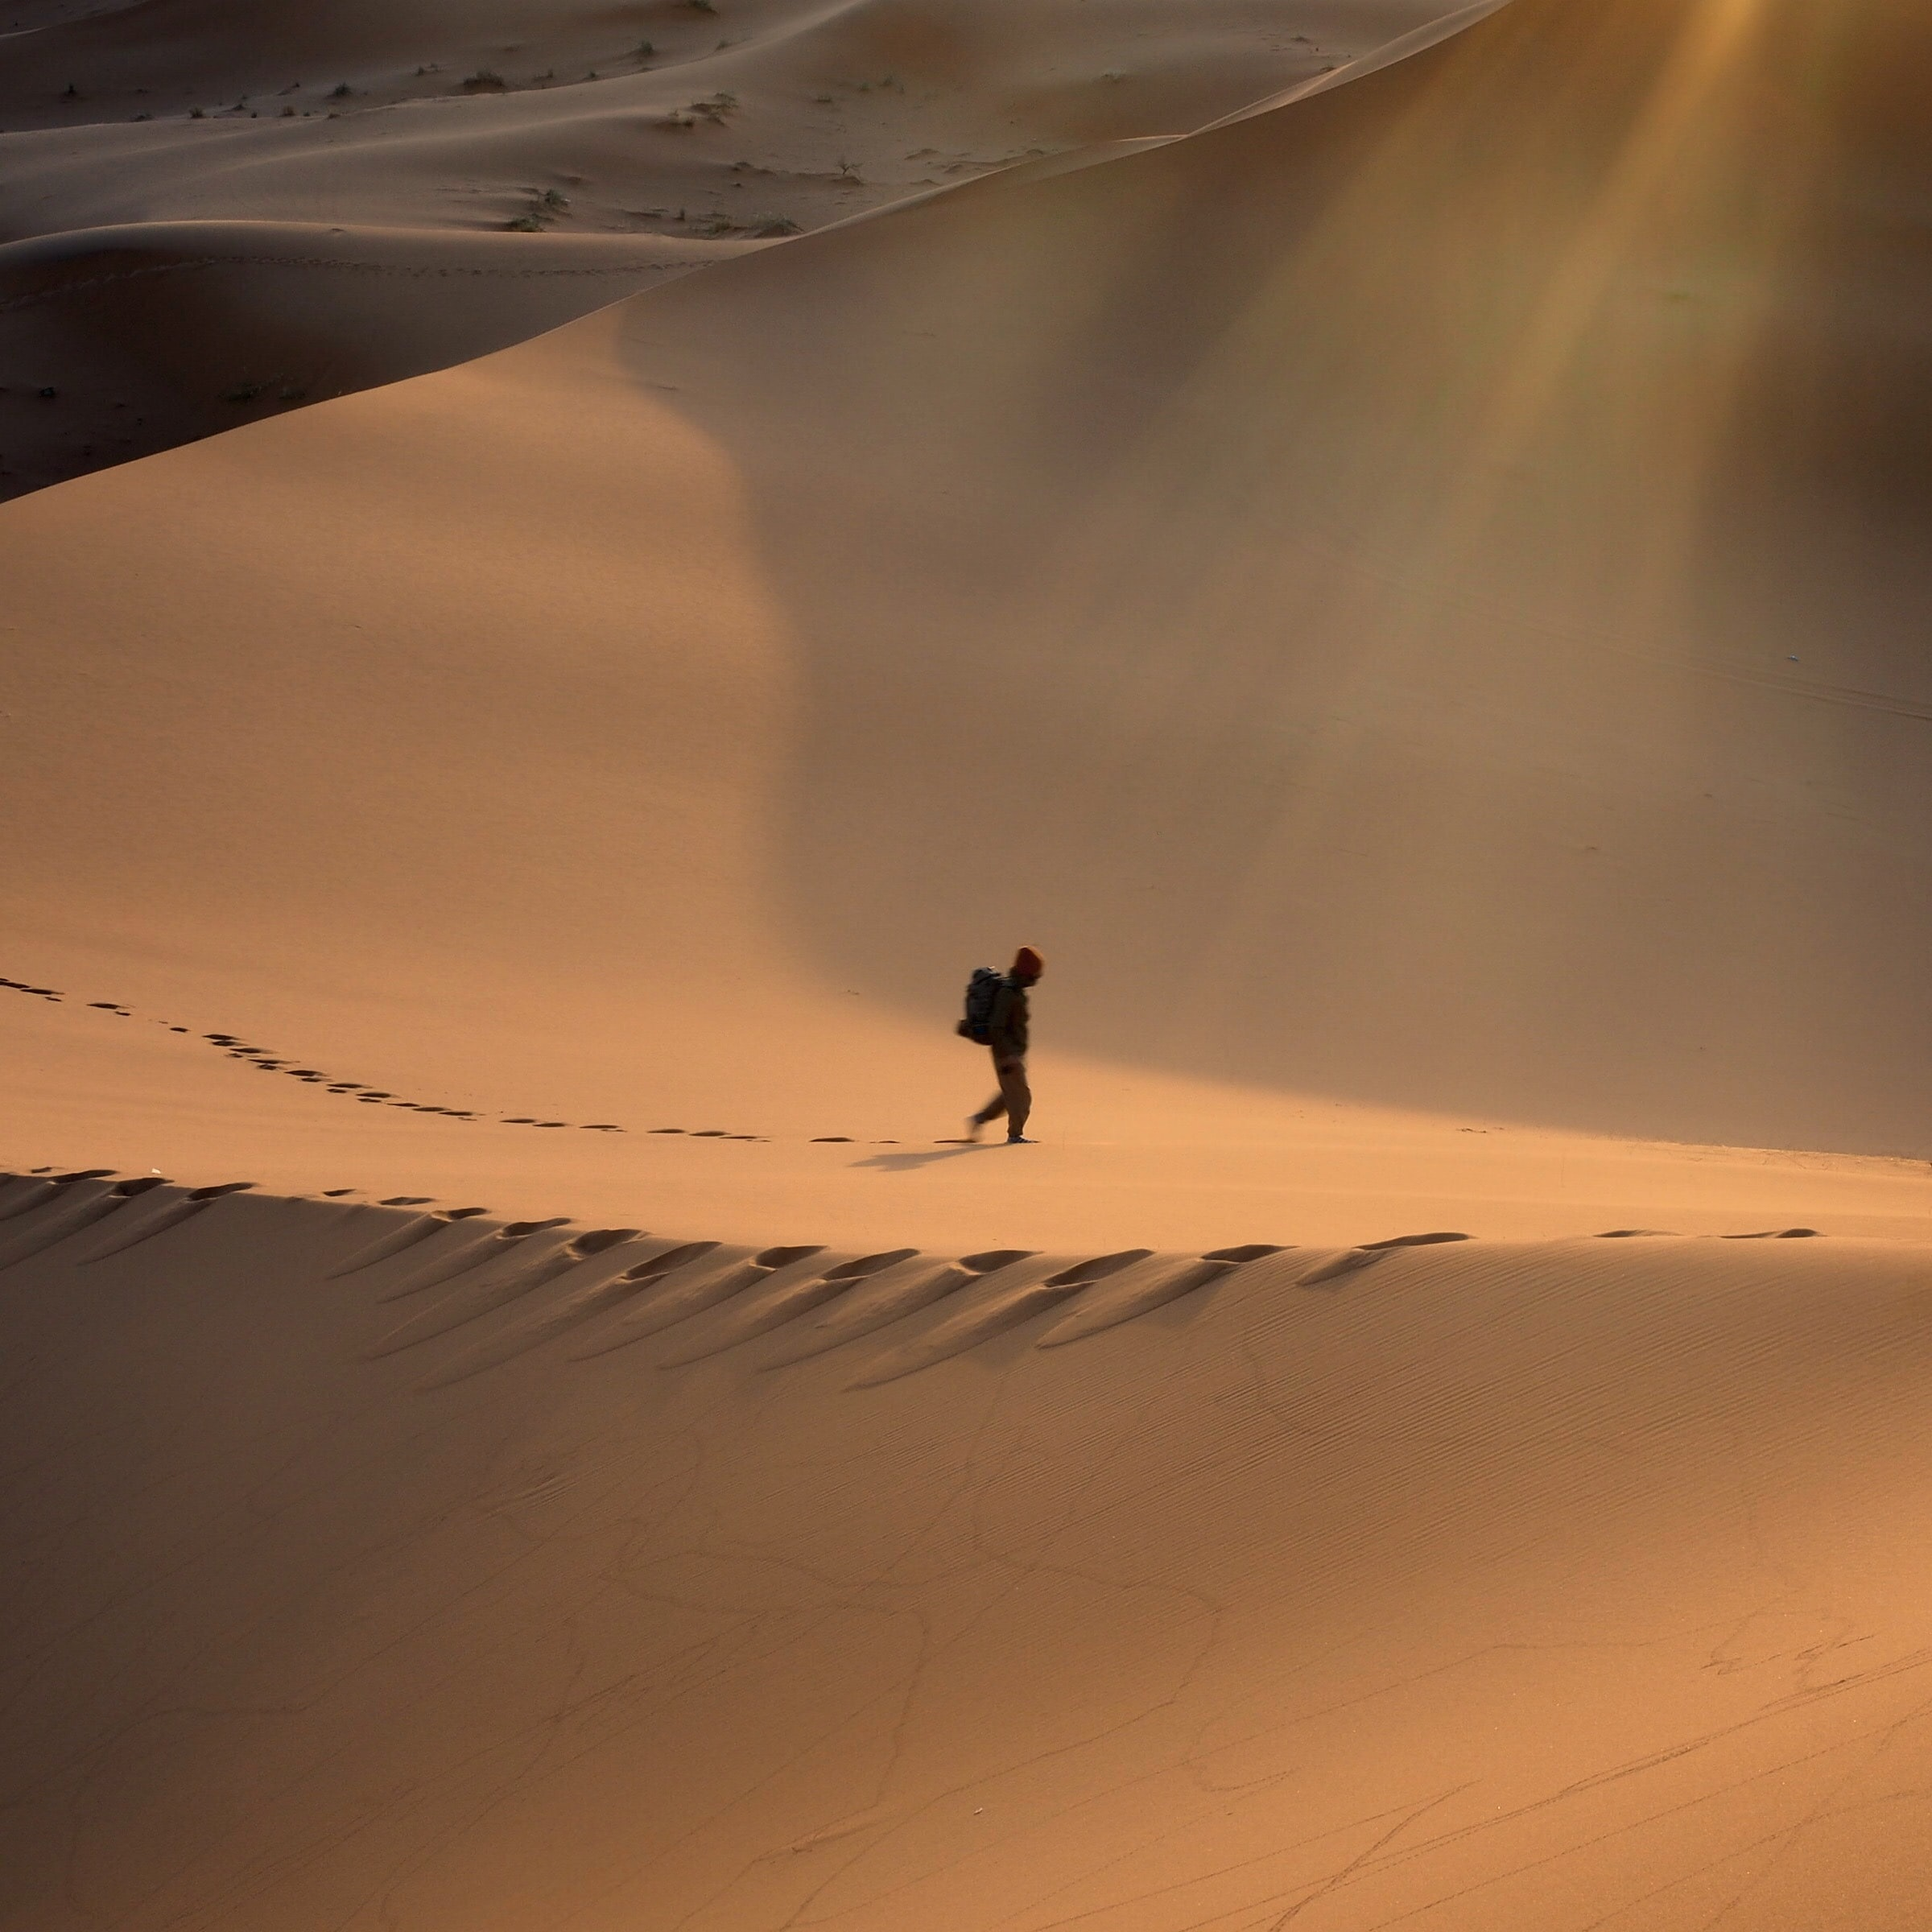 Desert Alone Footsteps And Wanderlust Hd Photo By Monica Valls